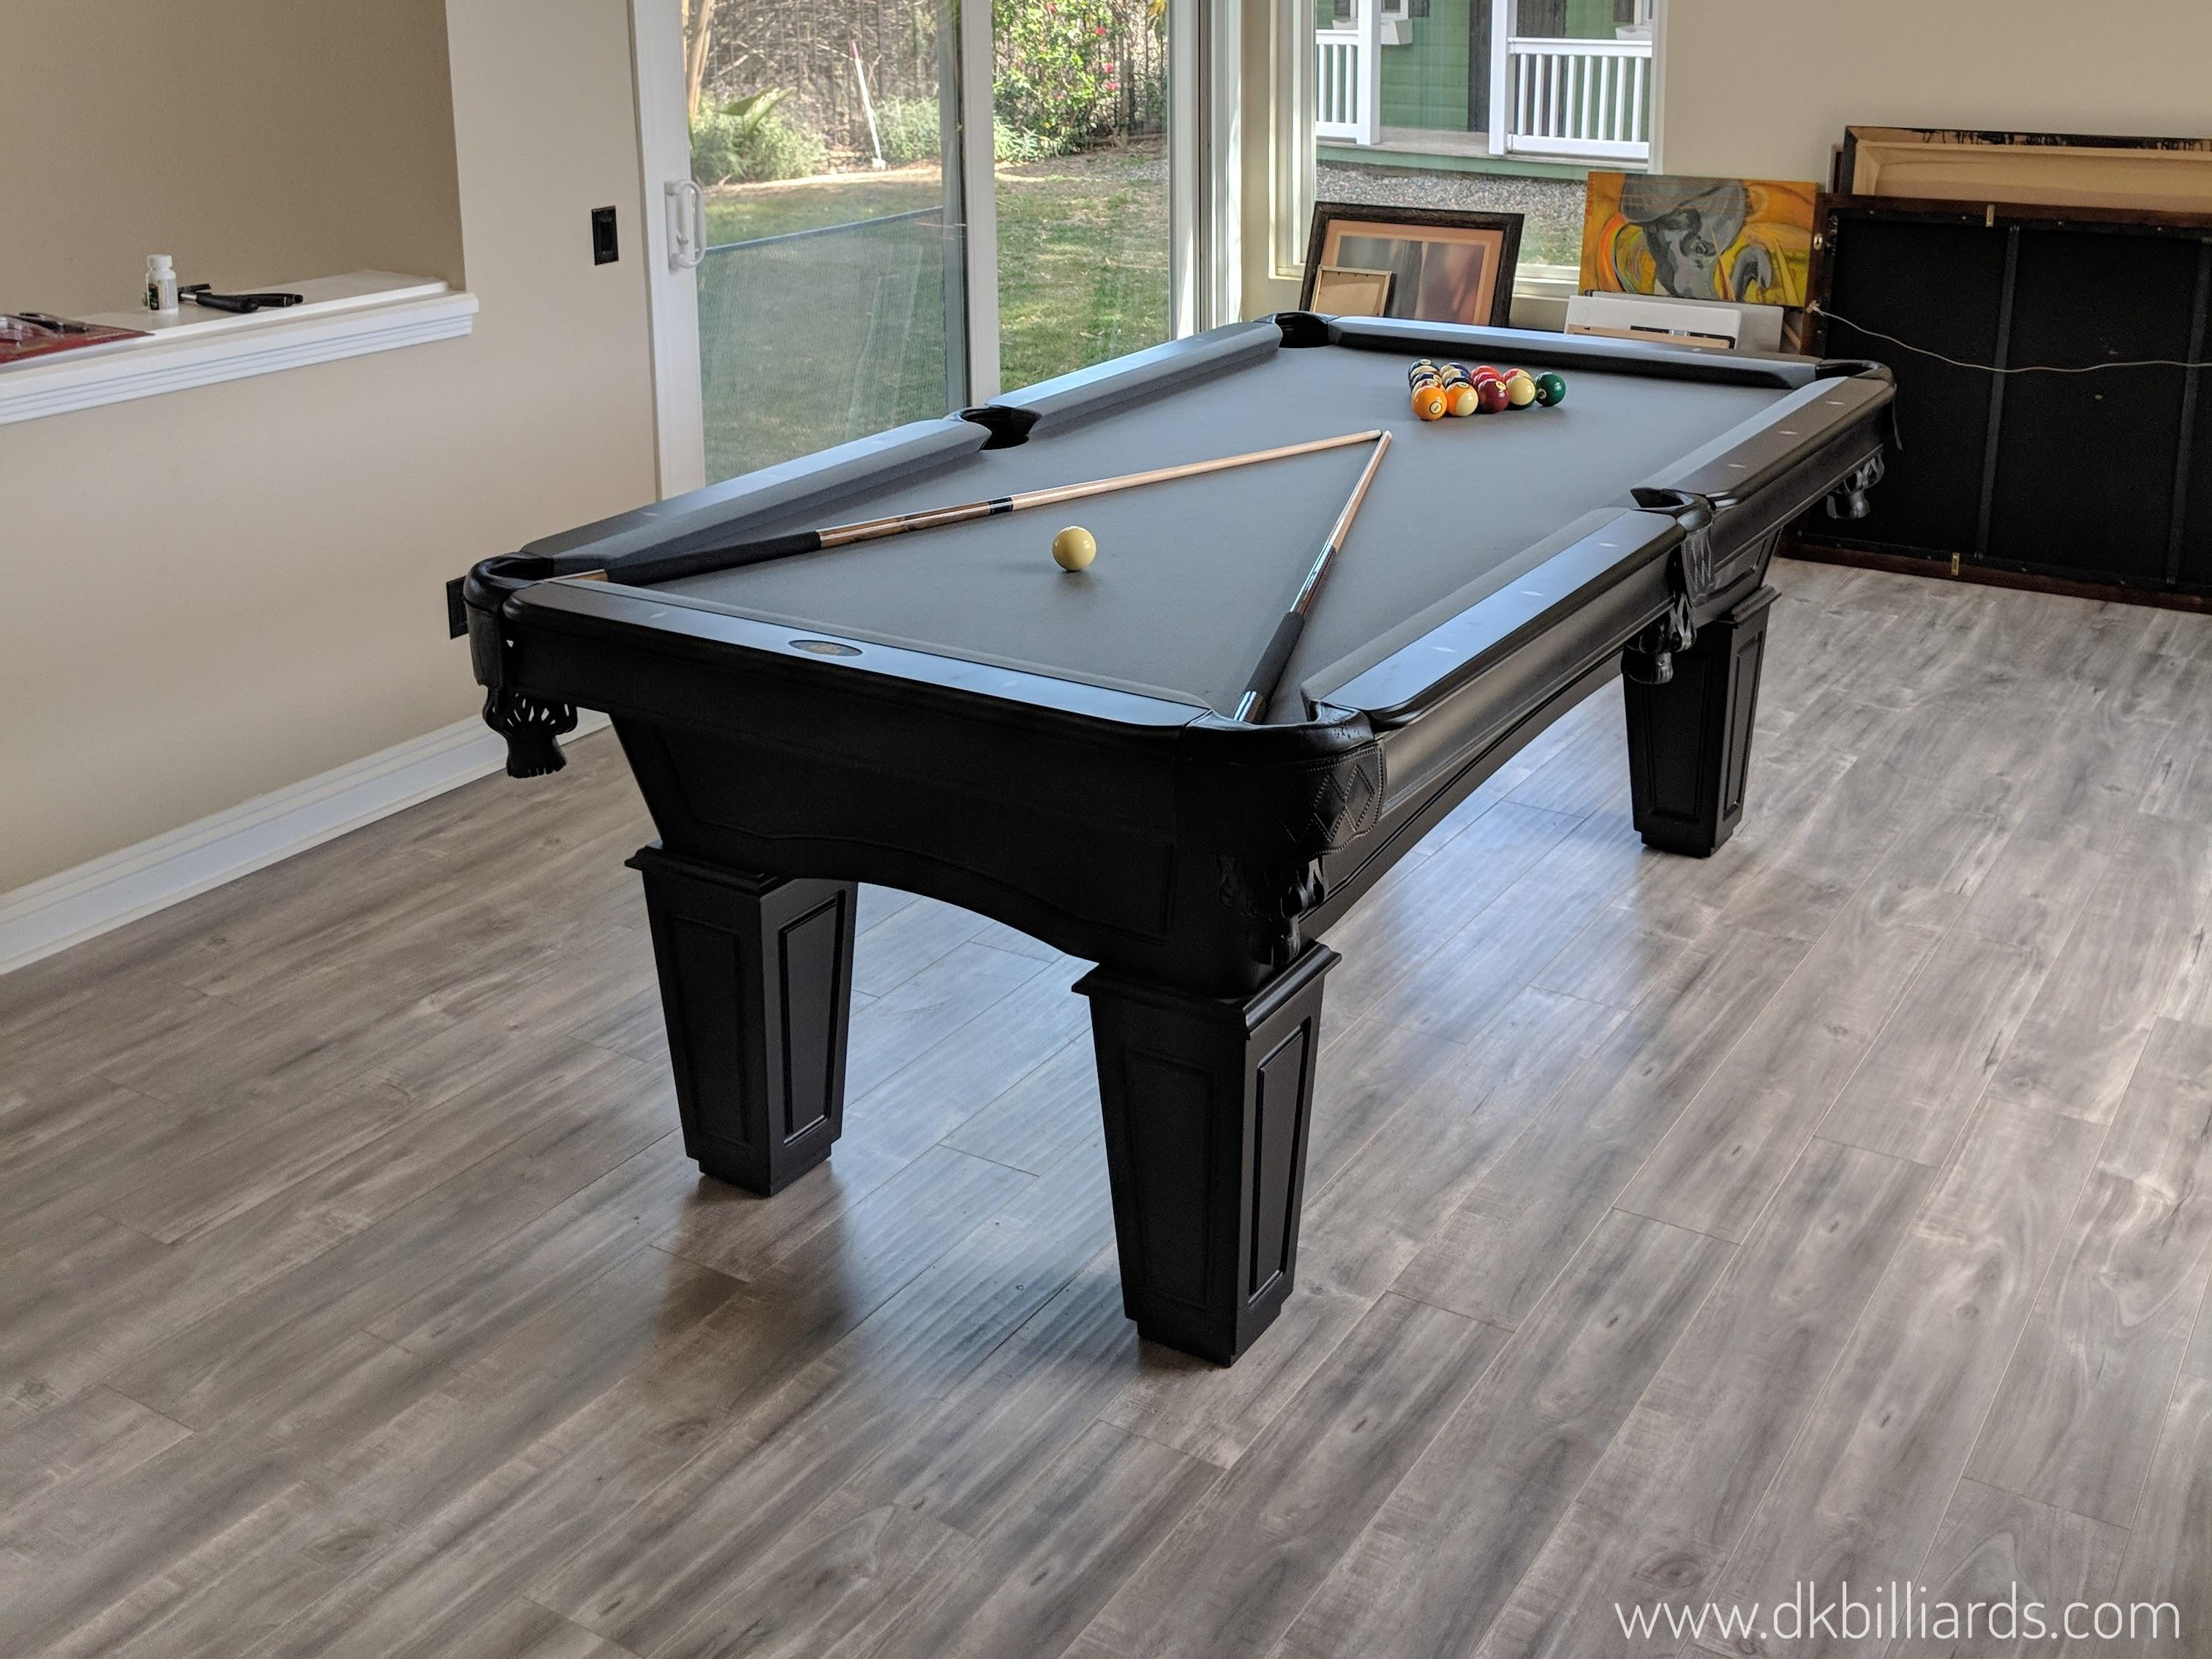 Black Stain 7u2032 Pool Table Simple Can Be A Beautiful Thing. Our Orange,  California Customers Chose A 7u2032 Nash With A Black Stain. They Converted  Their Formal ...